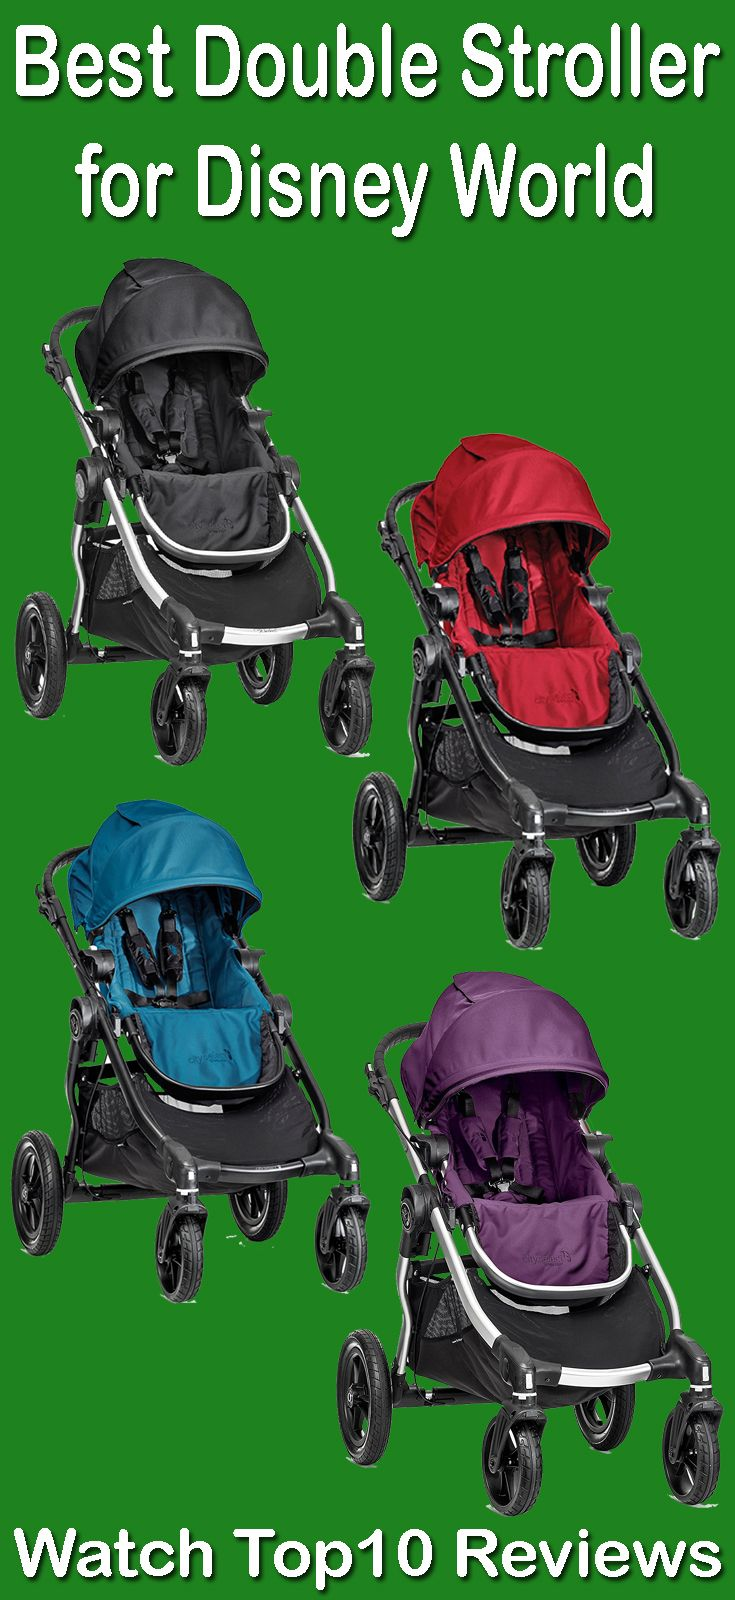 Baby Jogger City Select Stroller:Baby Jogger City Select Stroller is number one best double stroller 2017. It is an all-rounder baby stroller which has multiple options and multiple features. You can use this versatile stroller has the facilities of travel system, pram, double, triple, or just a single. This double stroller is well known for best twin stroller. Its one step compact folding system make easy to carry and car seat adding facility make it best travel stroller for twins too.